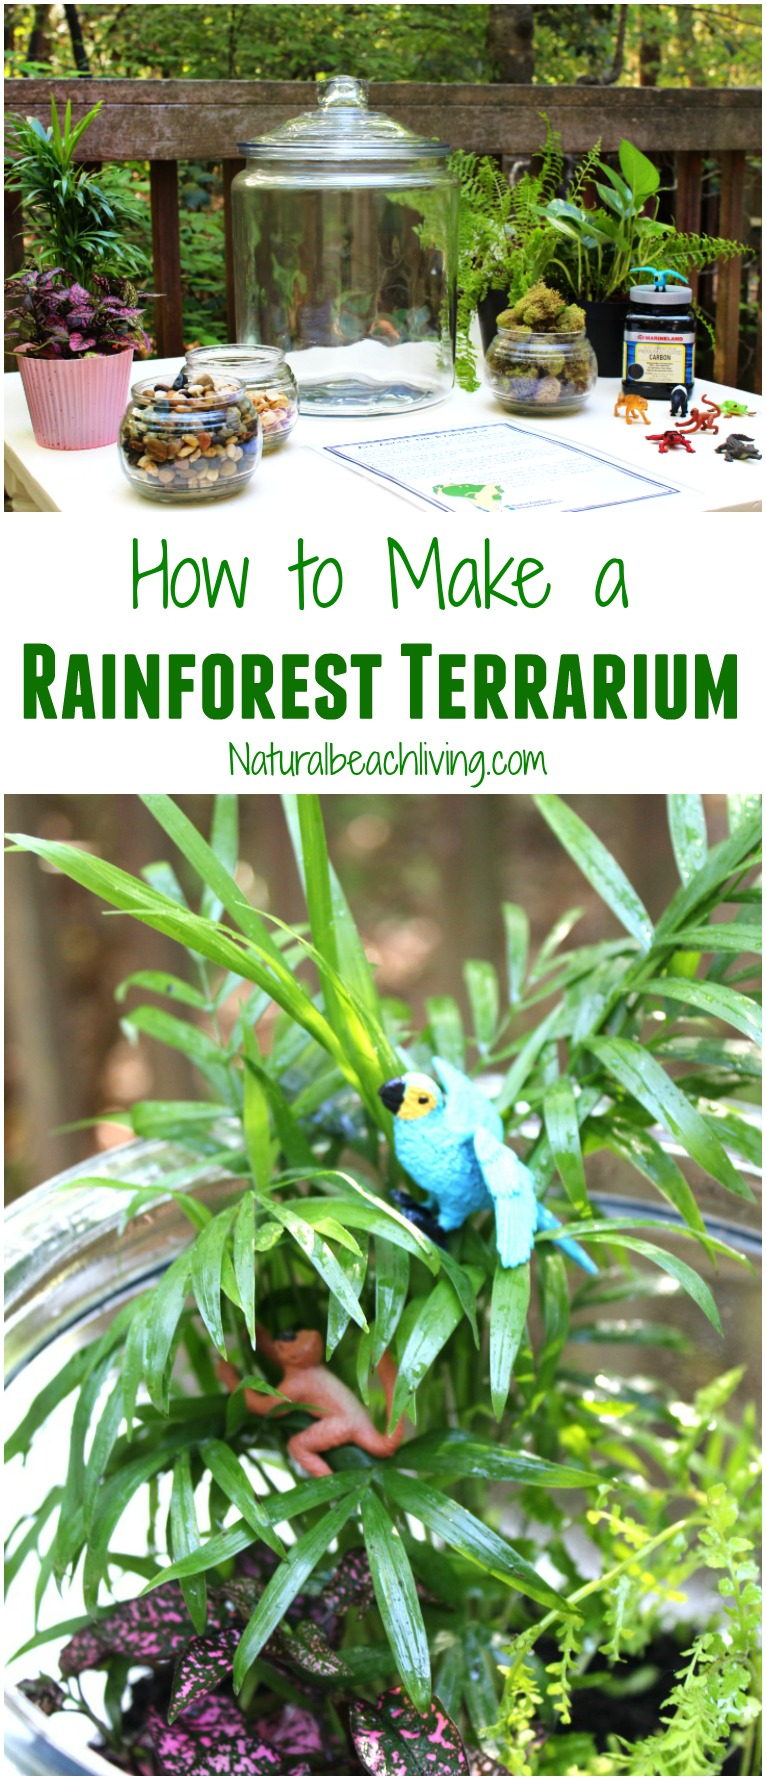 How to Make a Rainforest Terrarium for Kids, Learn about the Rainforest Animal Habitat, The Best DIY Rainforest Terrarium and ecosystem activities for kids, Water Cycle activities and Animal Habitat Activities, Hands-on activities for kids